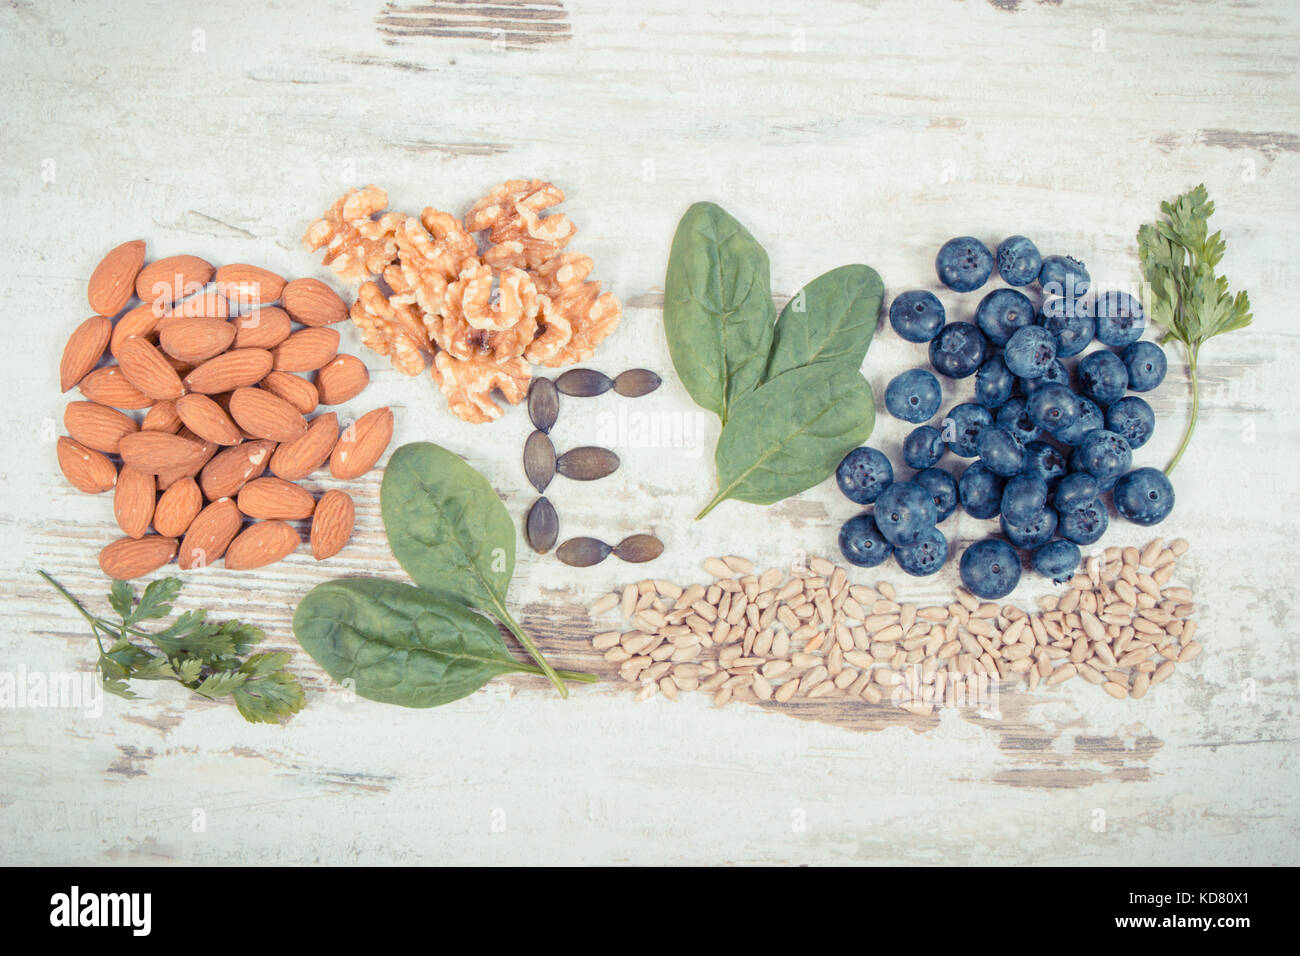 Vintage photo, Natural ingredients or products as source vitamin E, minerals and dietary fiber, healthy nutrition - Stock Image